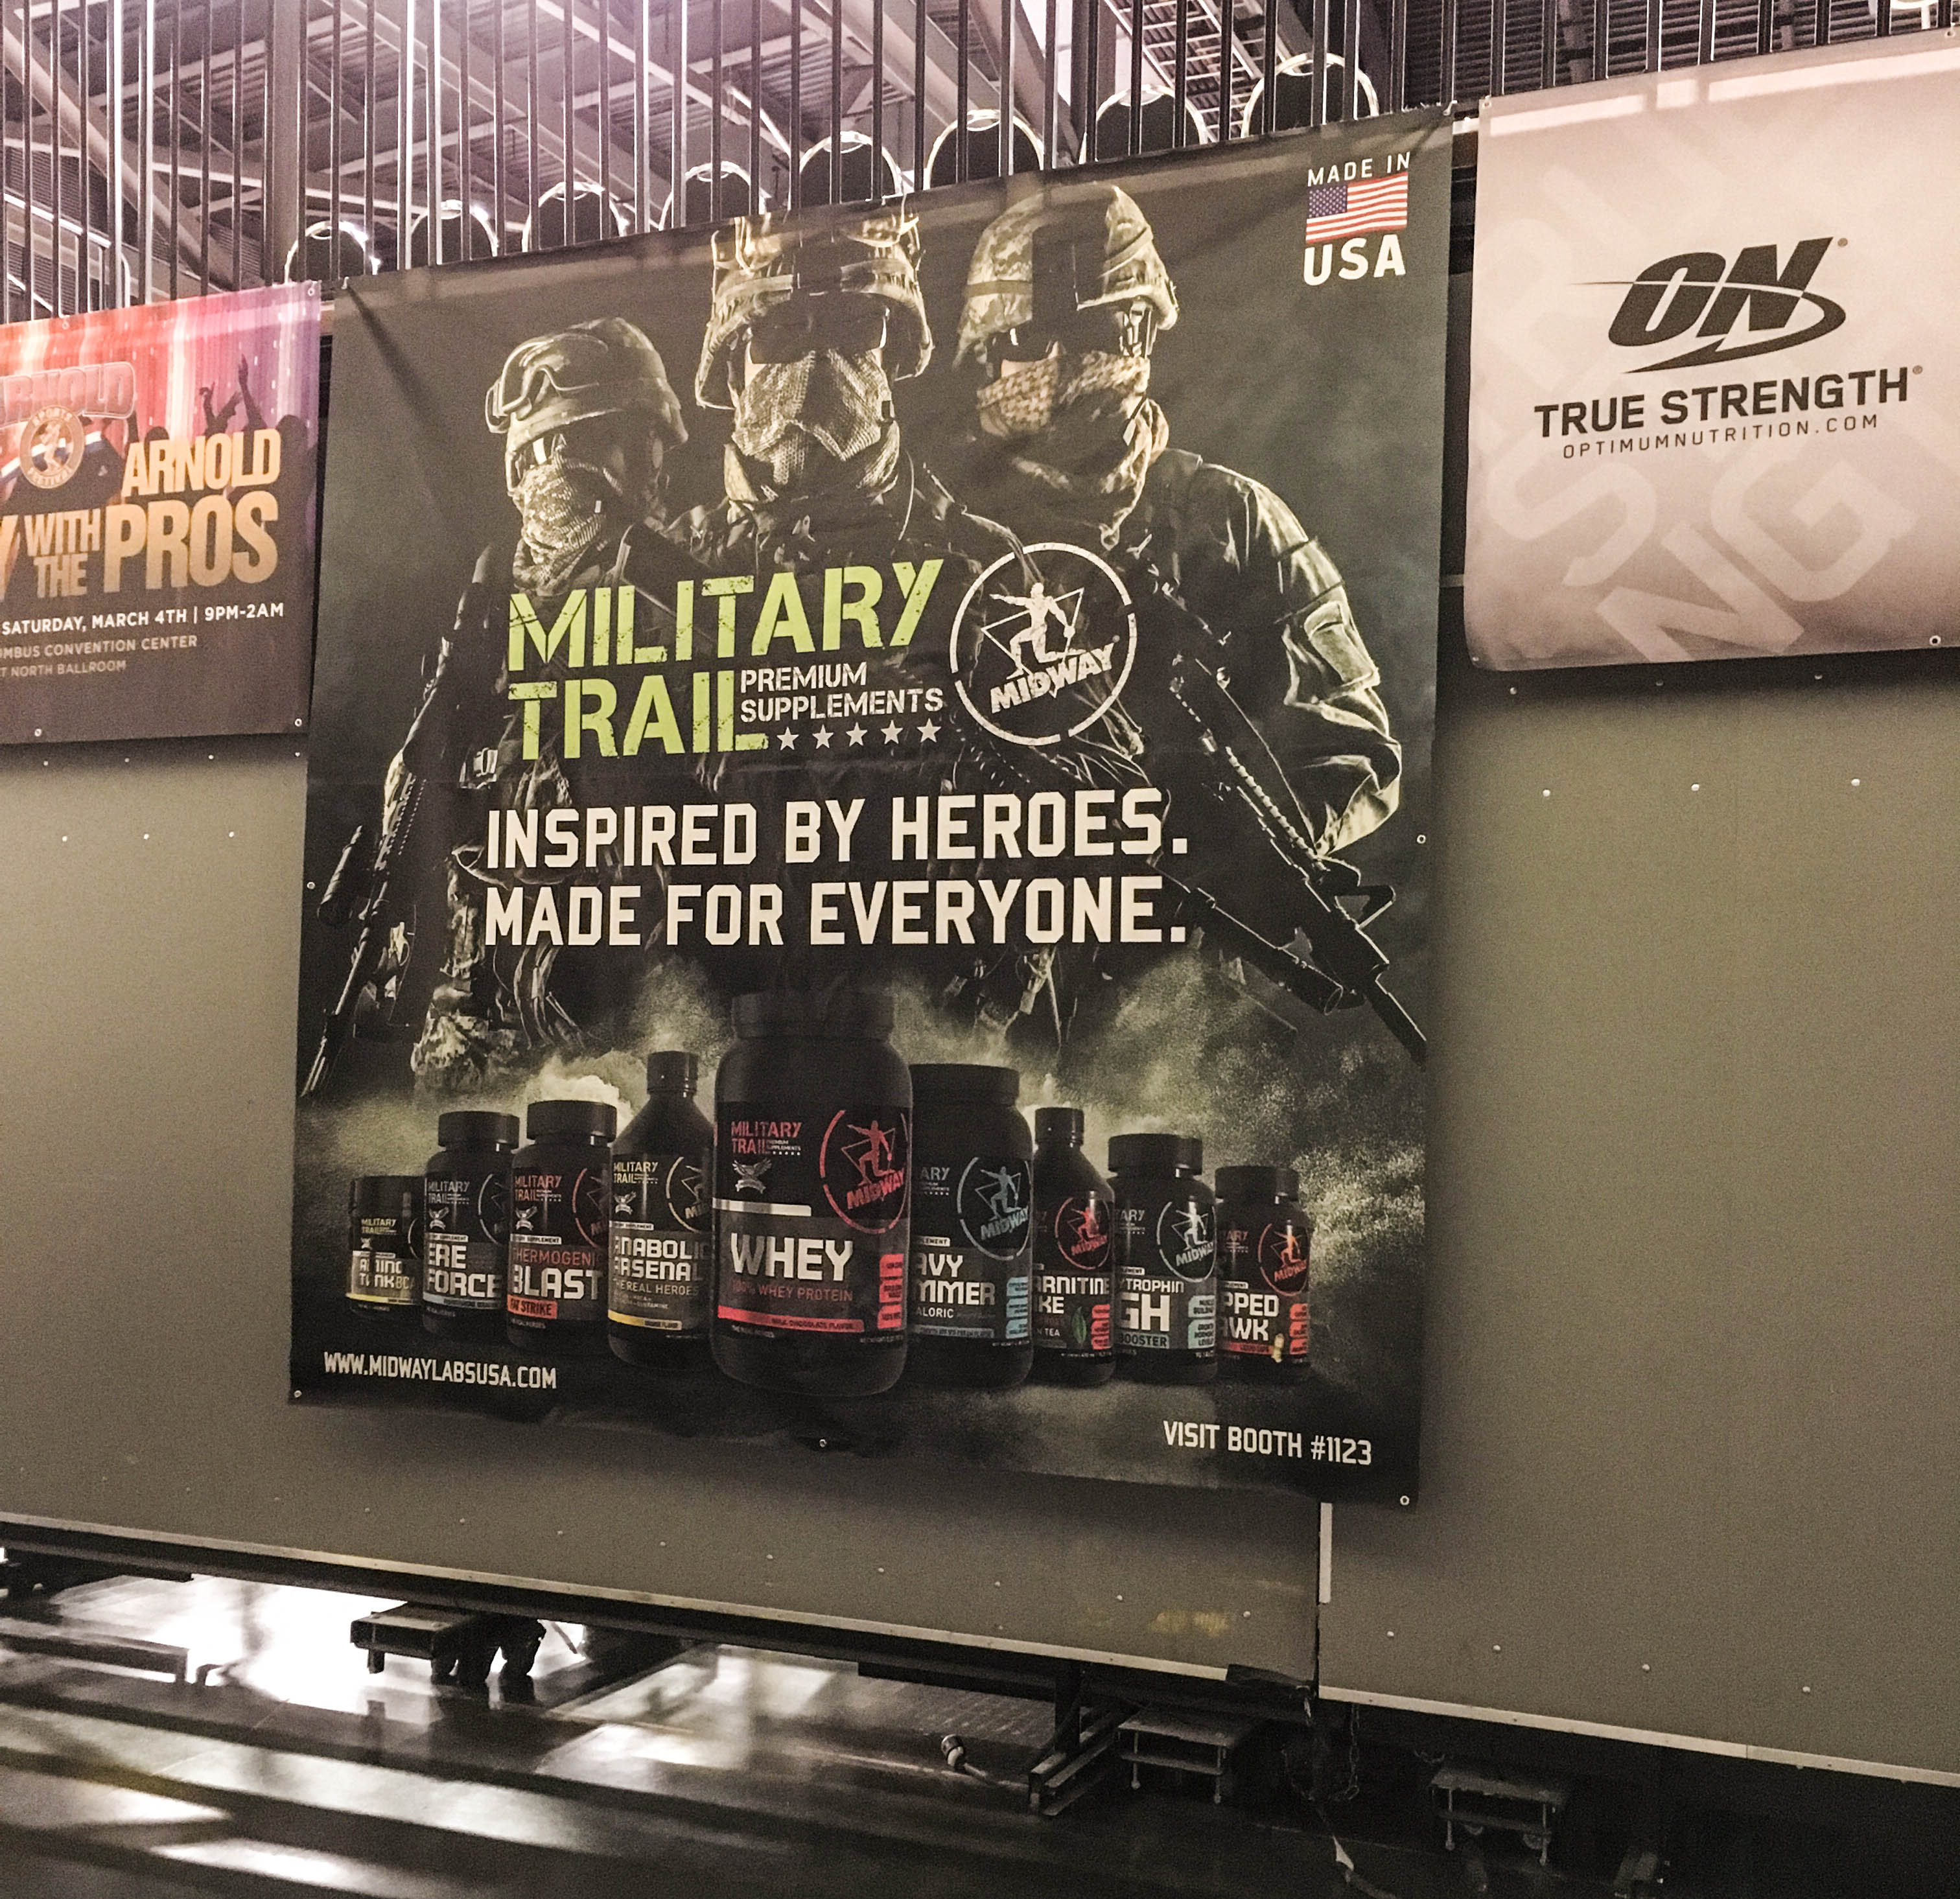 Military Trail Product Banner on Display at The Arnold.